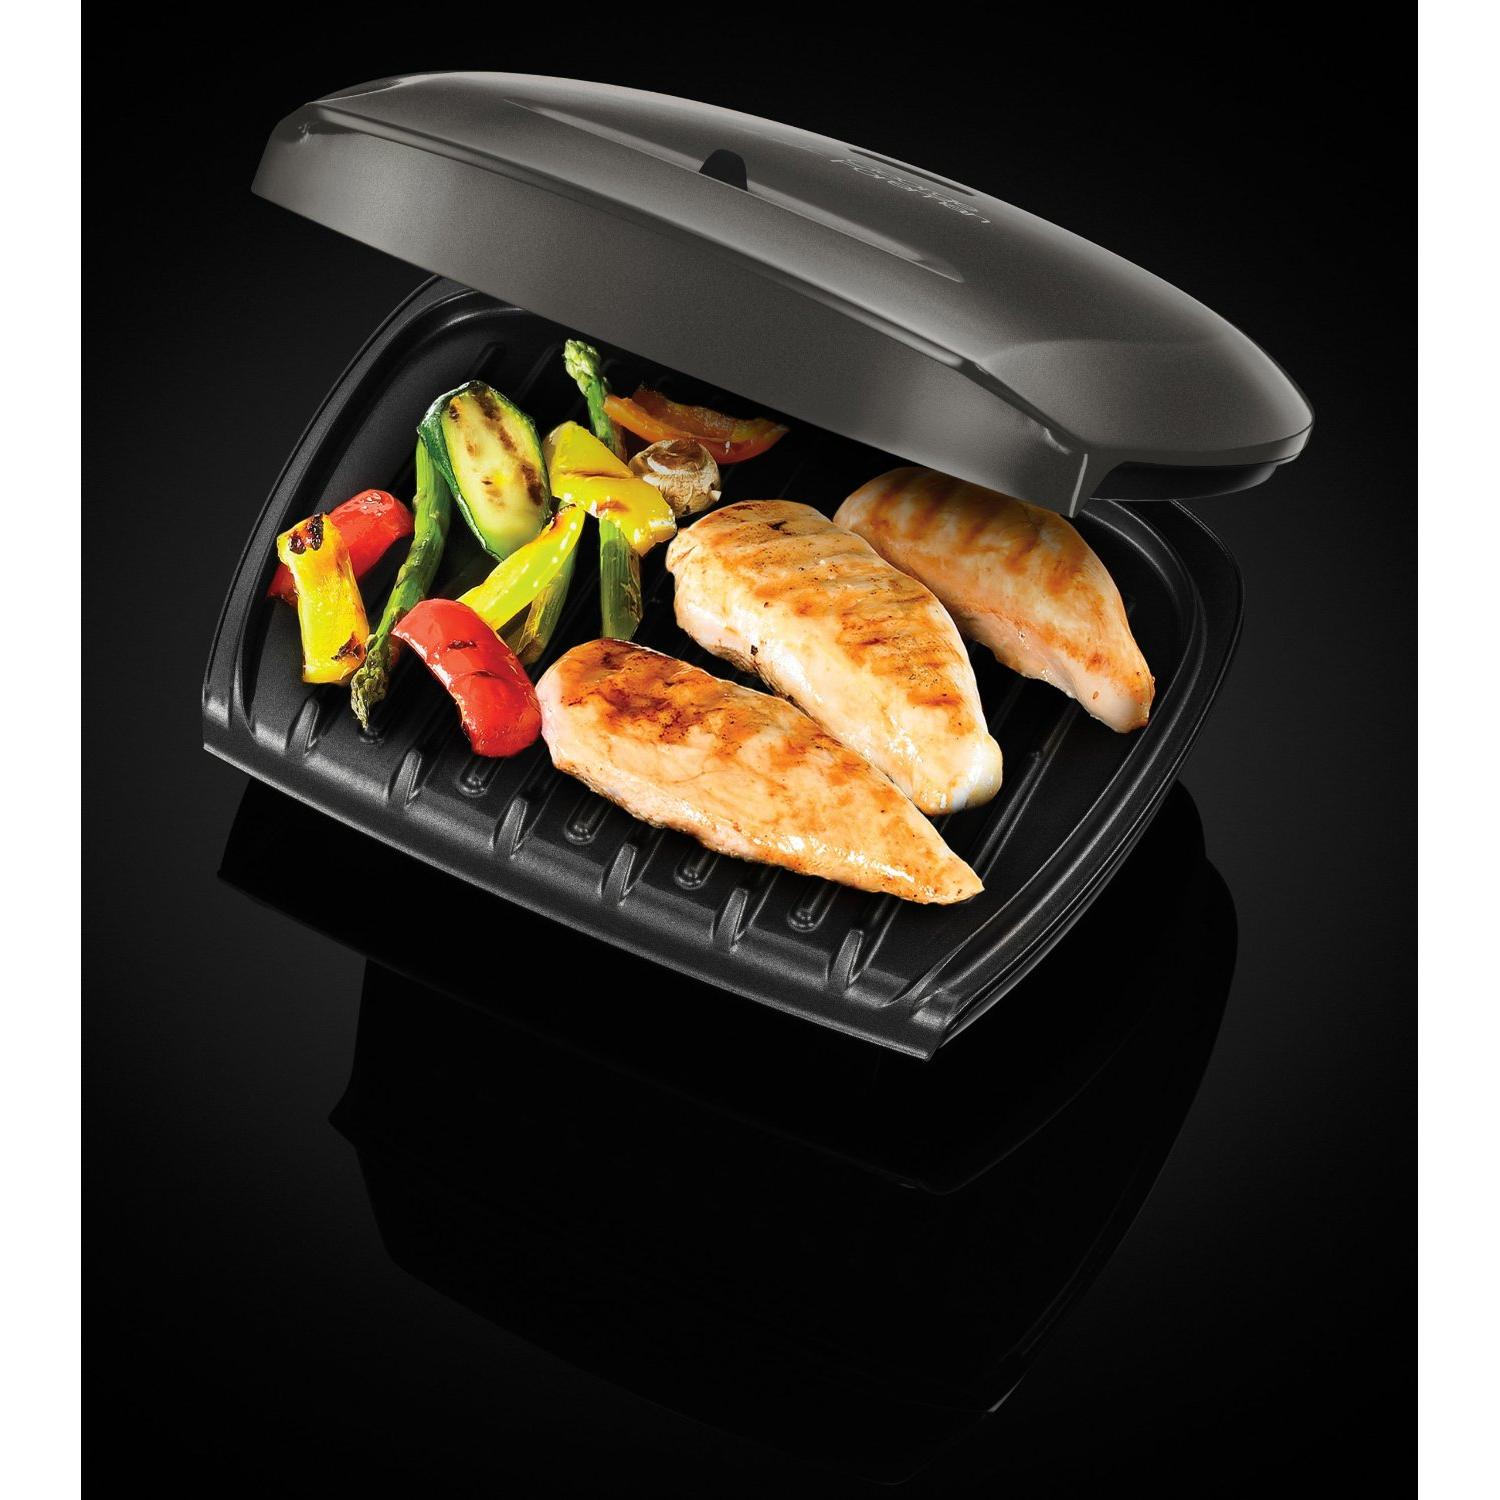 George Foreman - 18871 - Grill réducteur de graisse 5 portions